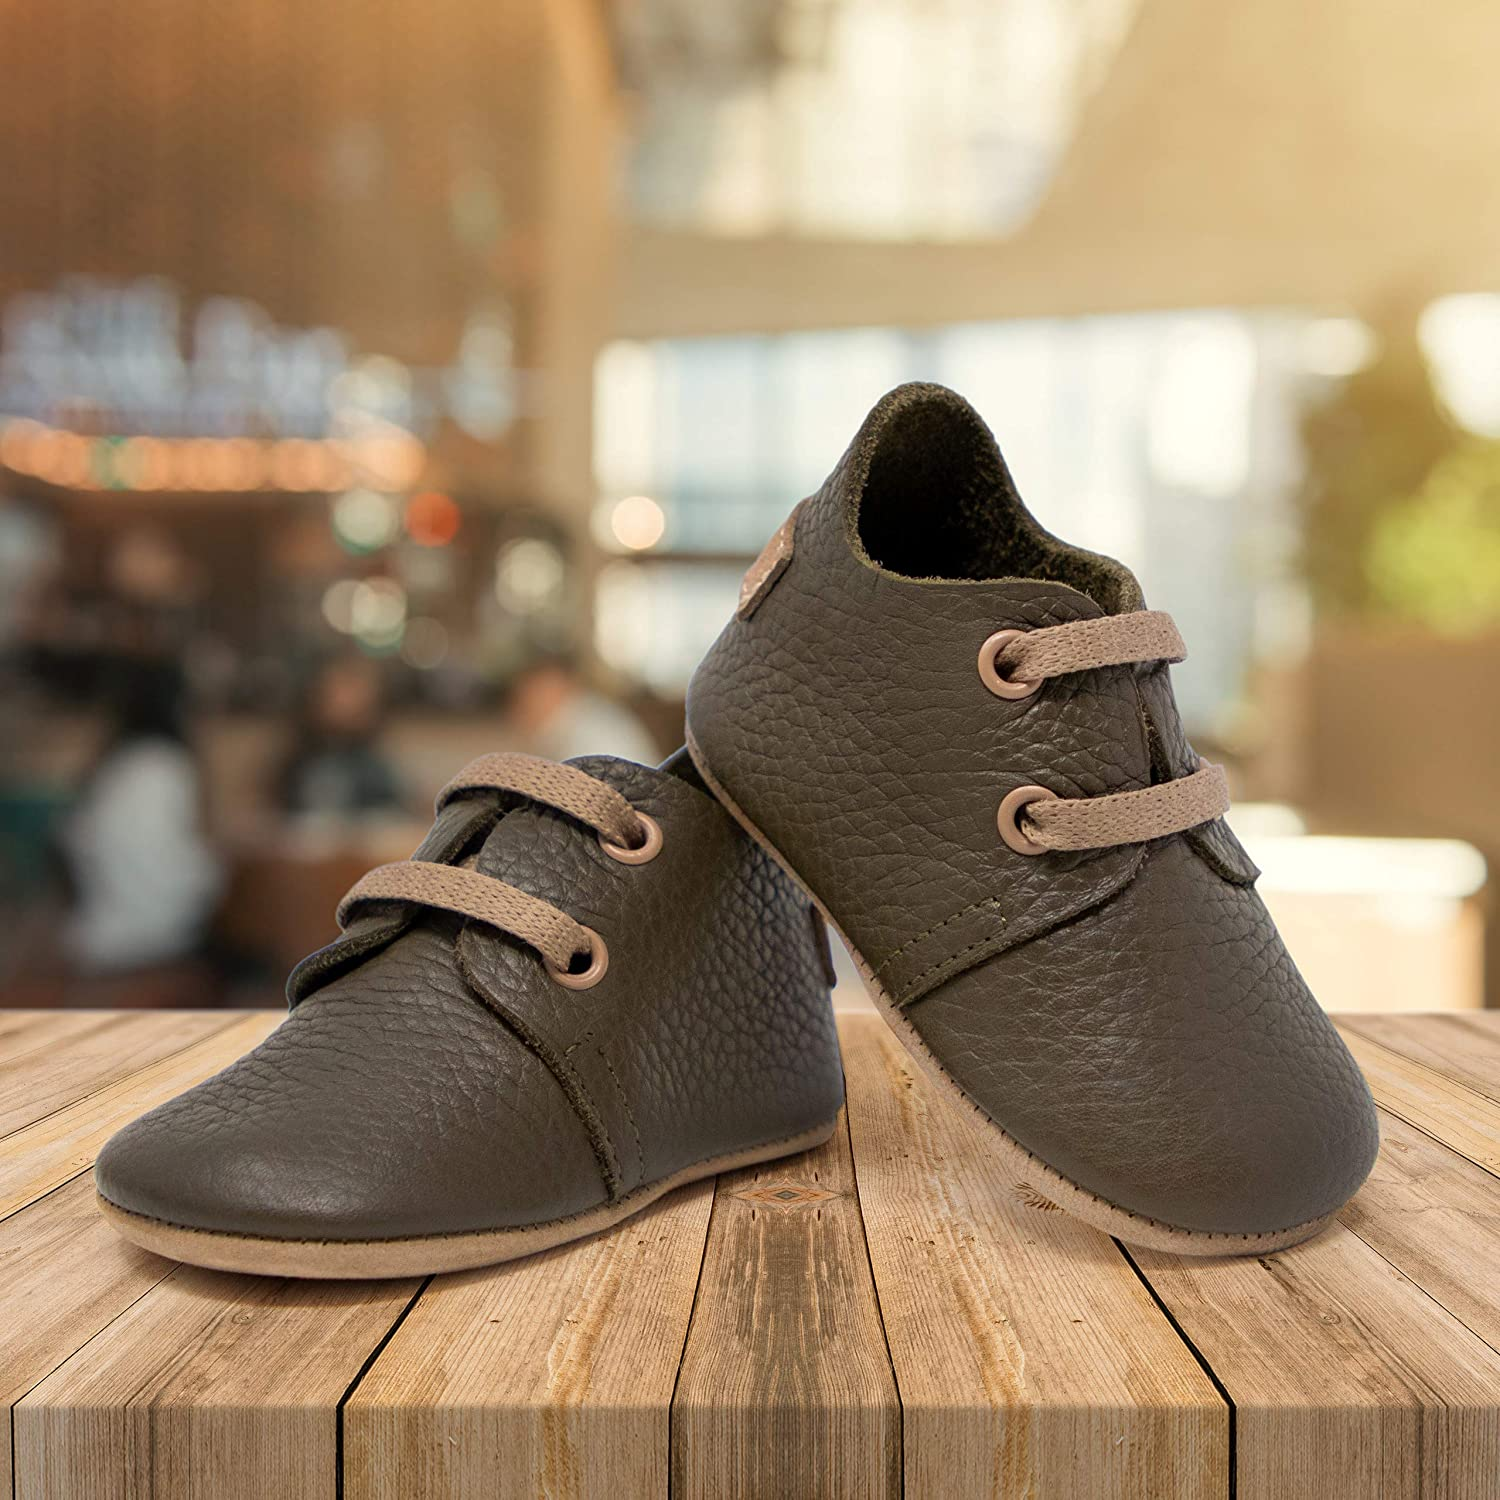 Rubber and Soft Sole Ella Bonna Oxford Baby Boy Shoes Toddler Girl Baby Walking Shoes Leather Baby Shoes Newborn Infant Mini Kids Crib Baby Moccasins